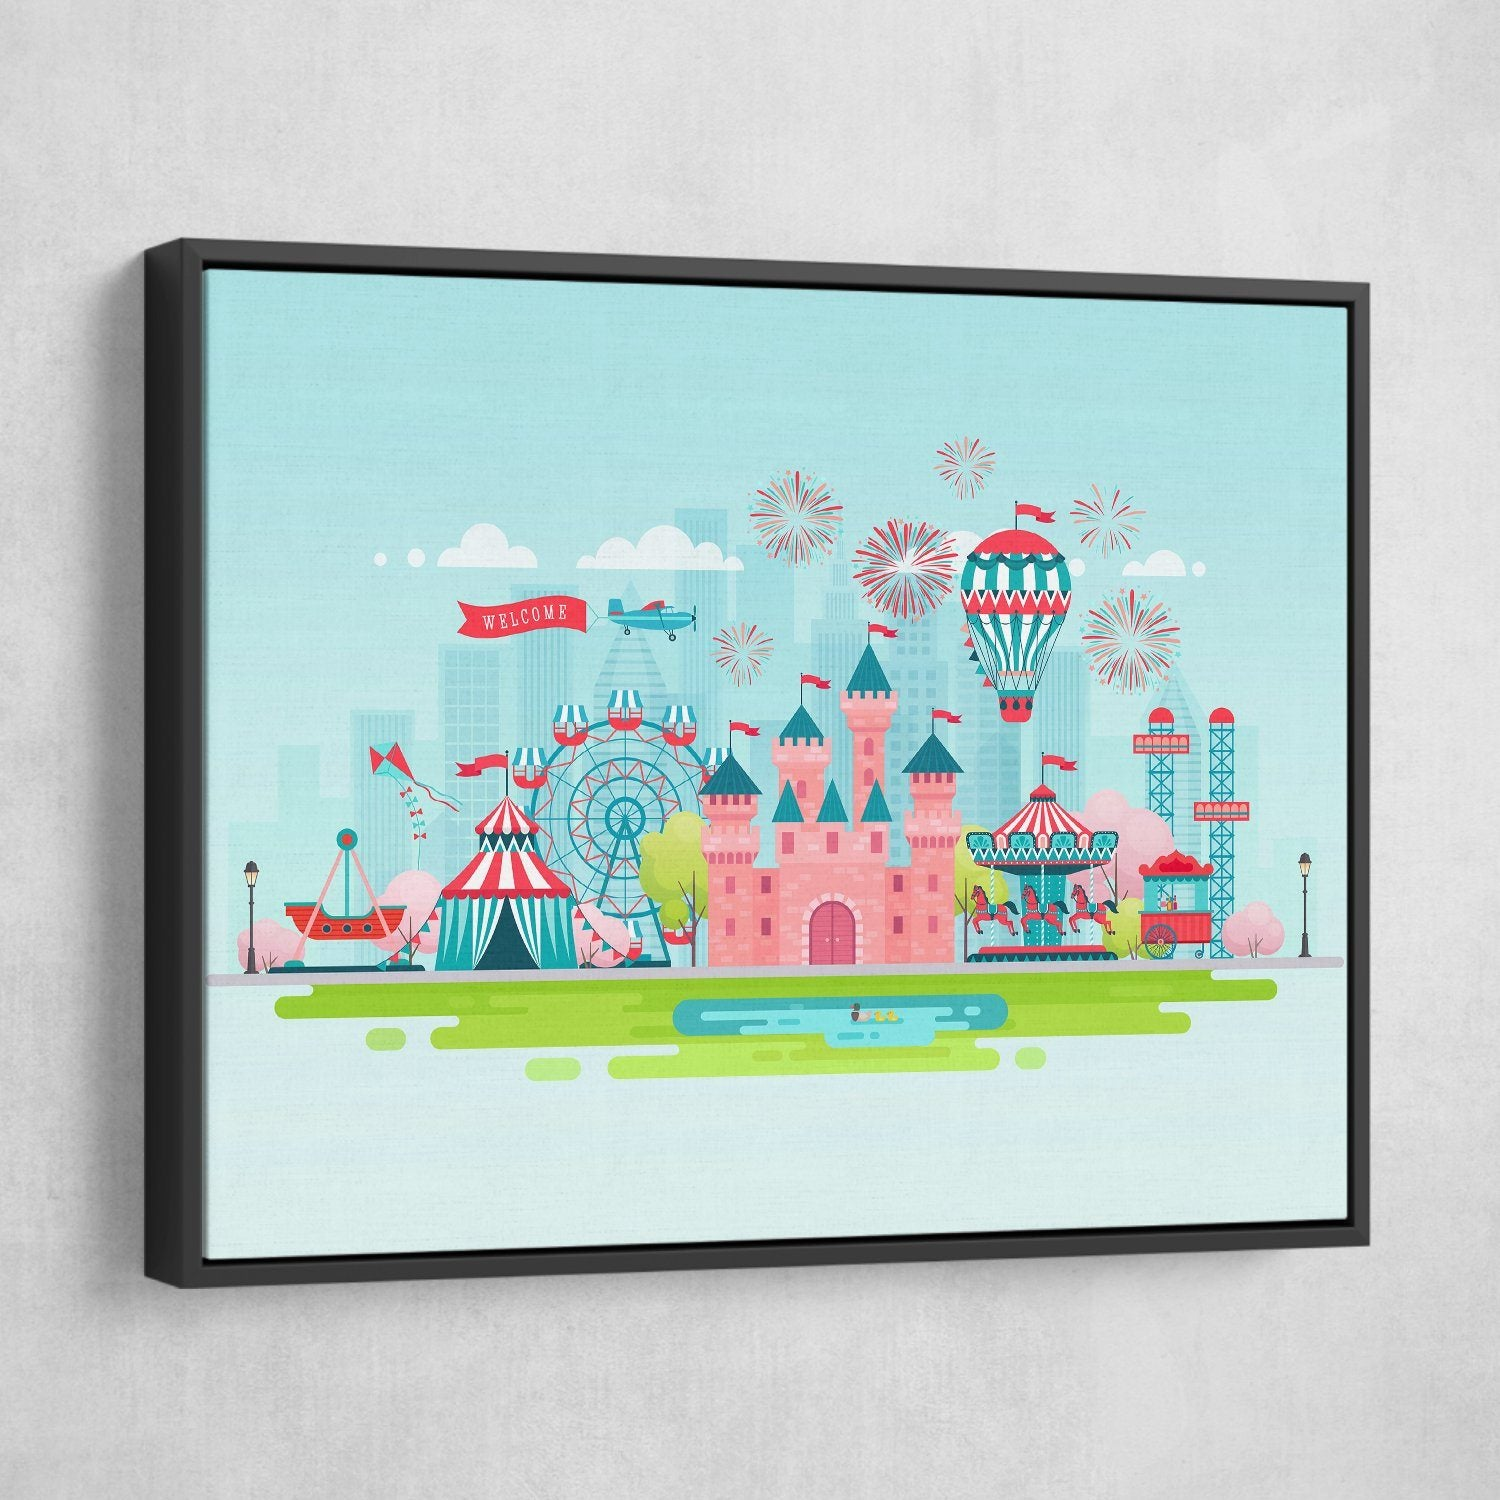 Kids bedroom wall art